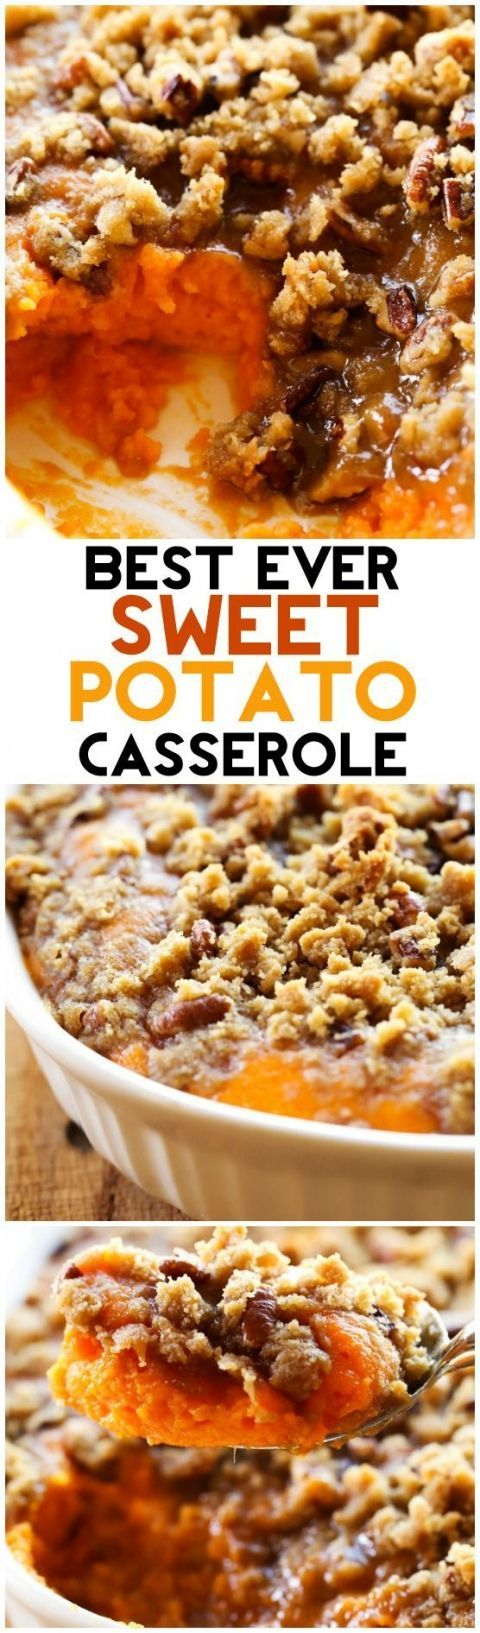 Best Ever Sweet Potato Casserole by Chef in Training